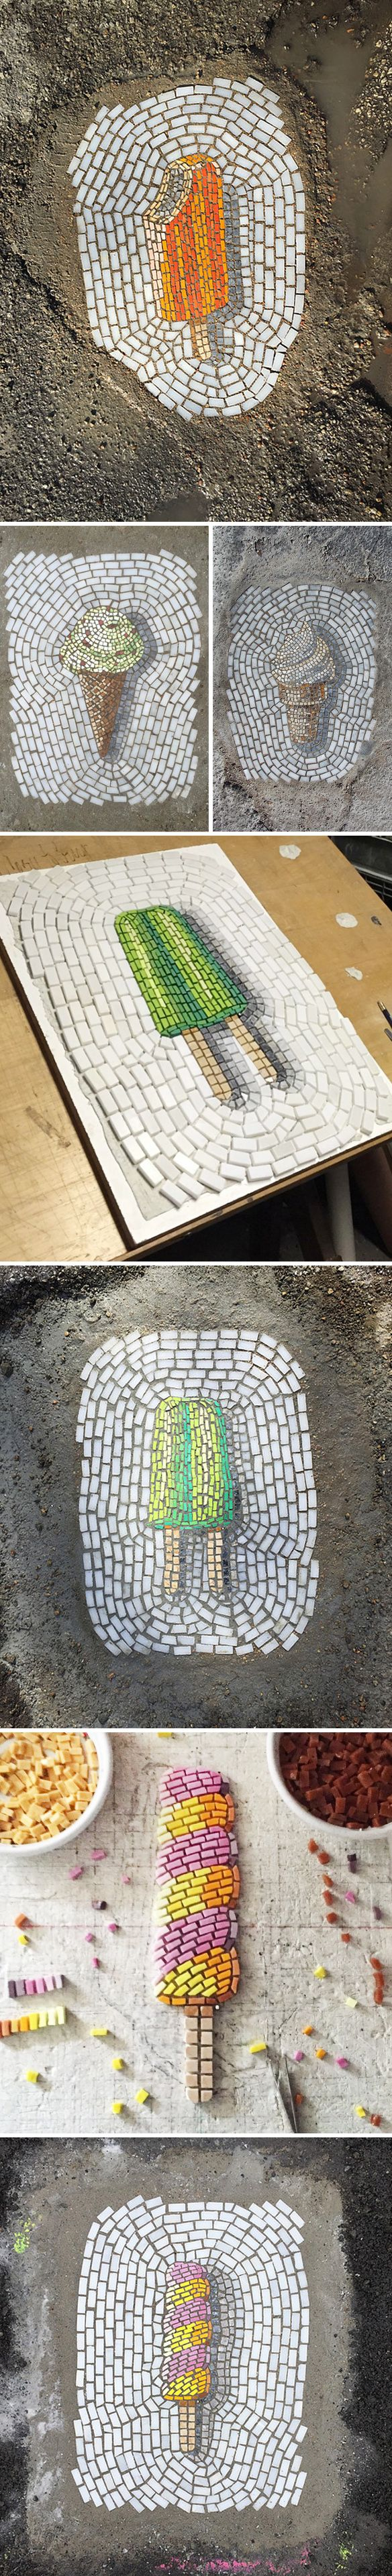 jim bachor - glass & marble mosaics... in potholes! #icecream